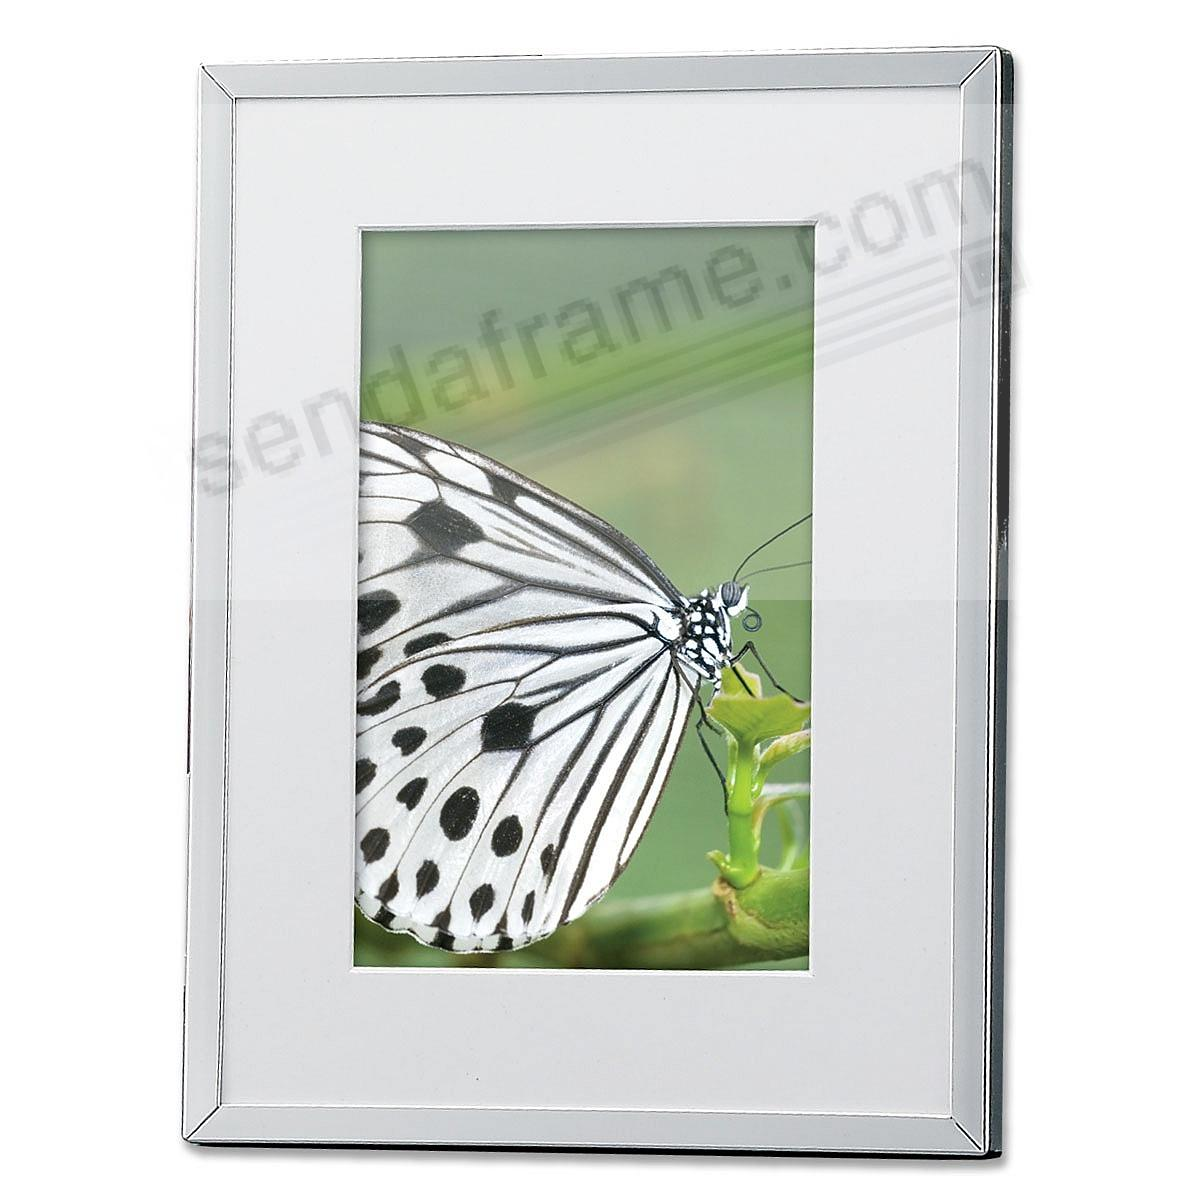 Polished-Silver matted 6x8/4x6 frame by Lawrence Frames®